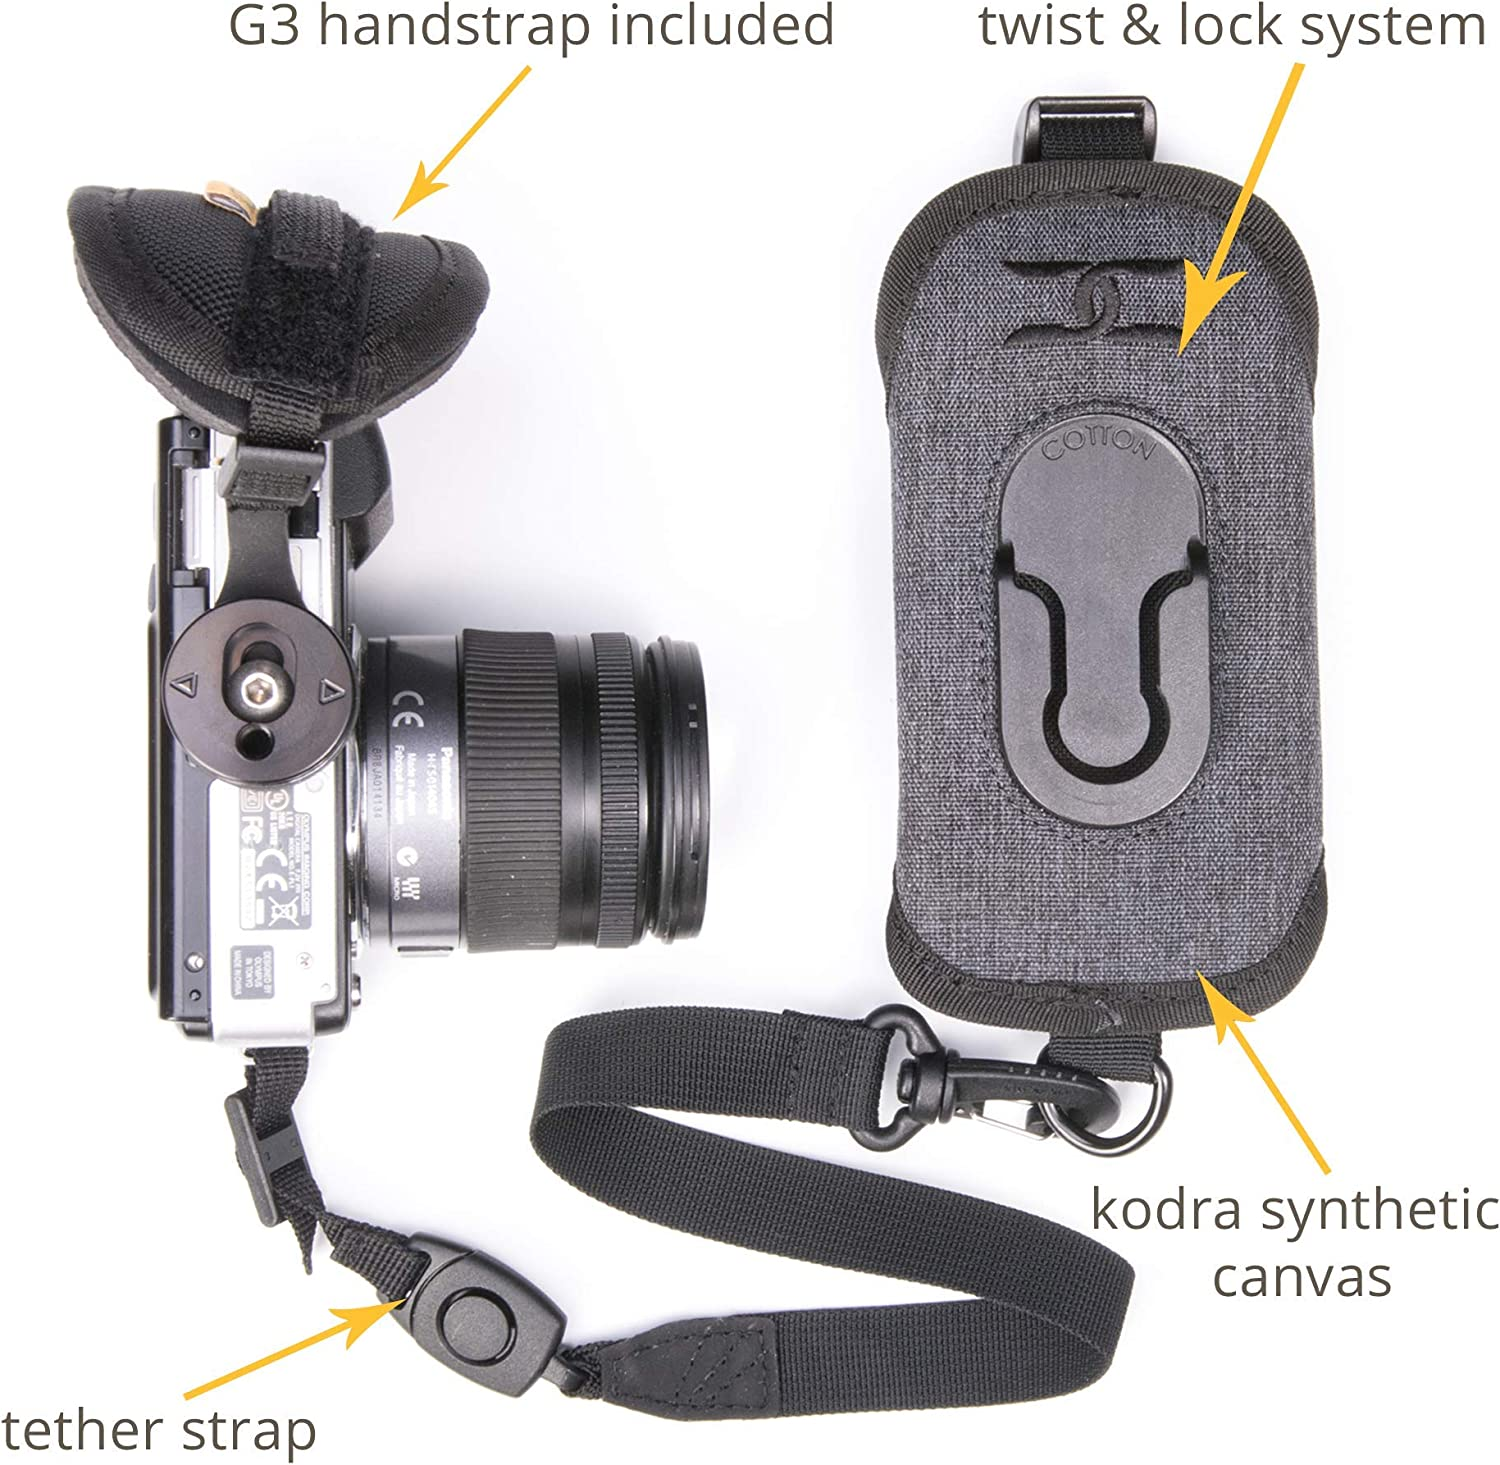 Cotton Carrier 288GREY CCS G3 Strap Shot for One Camera - Grey